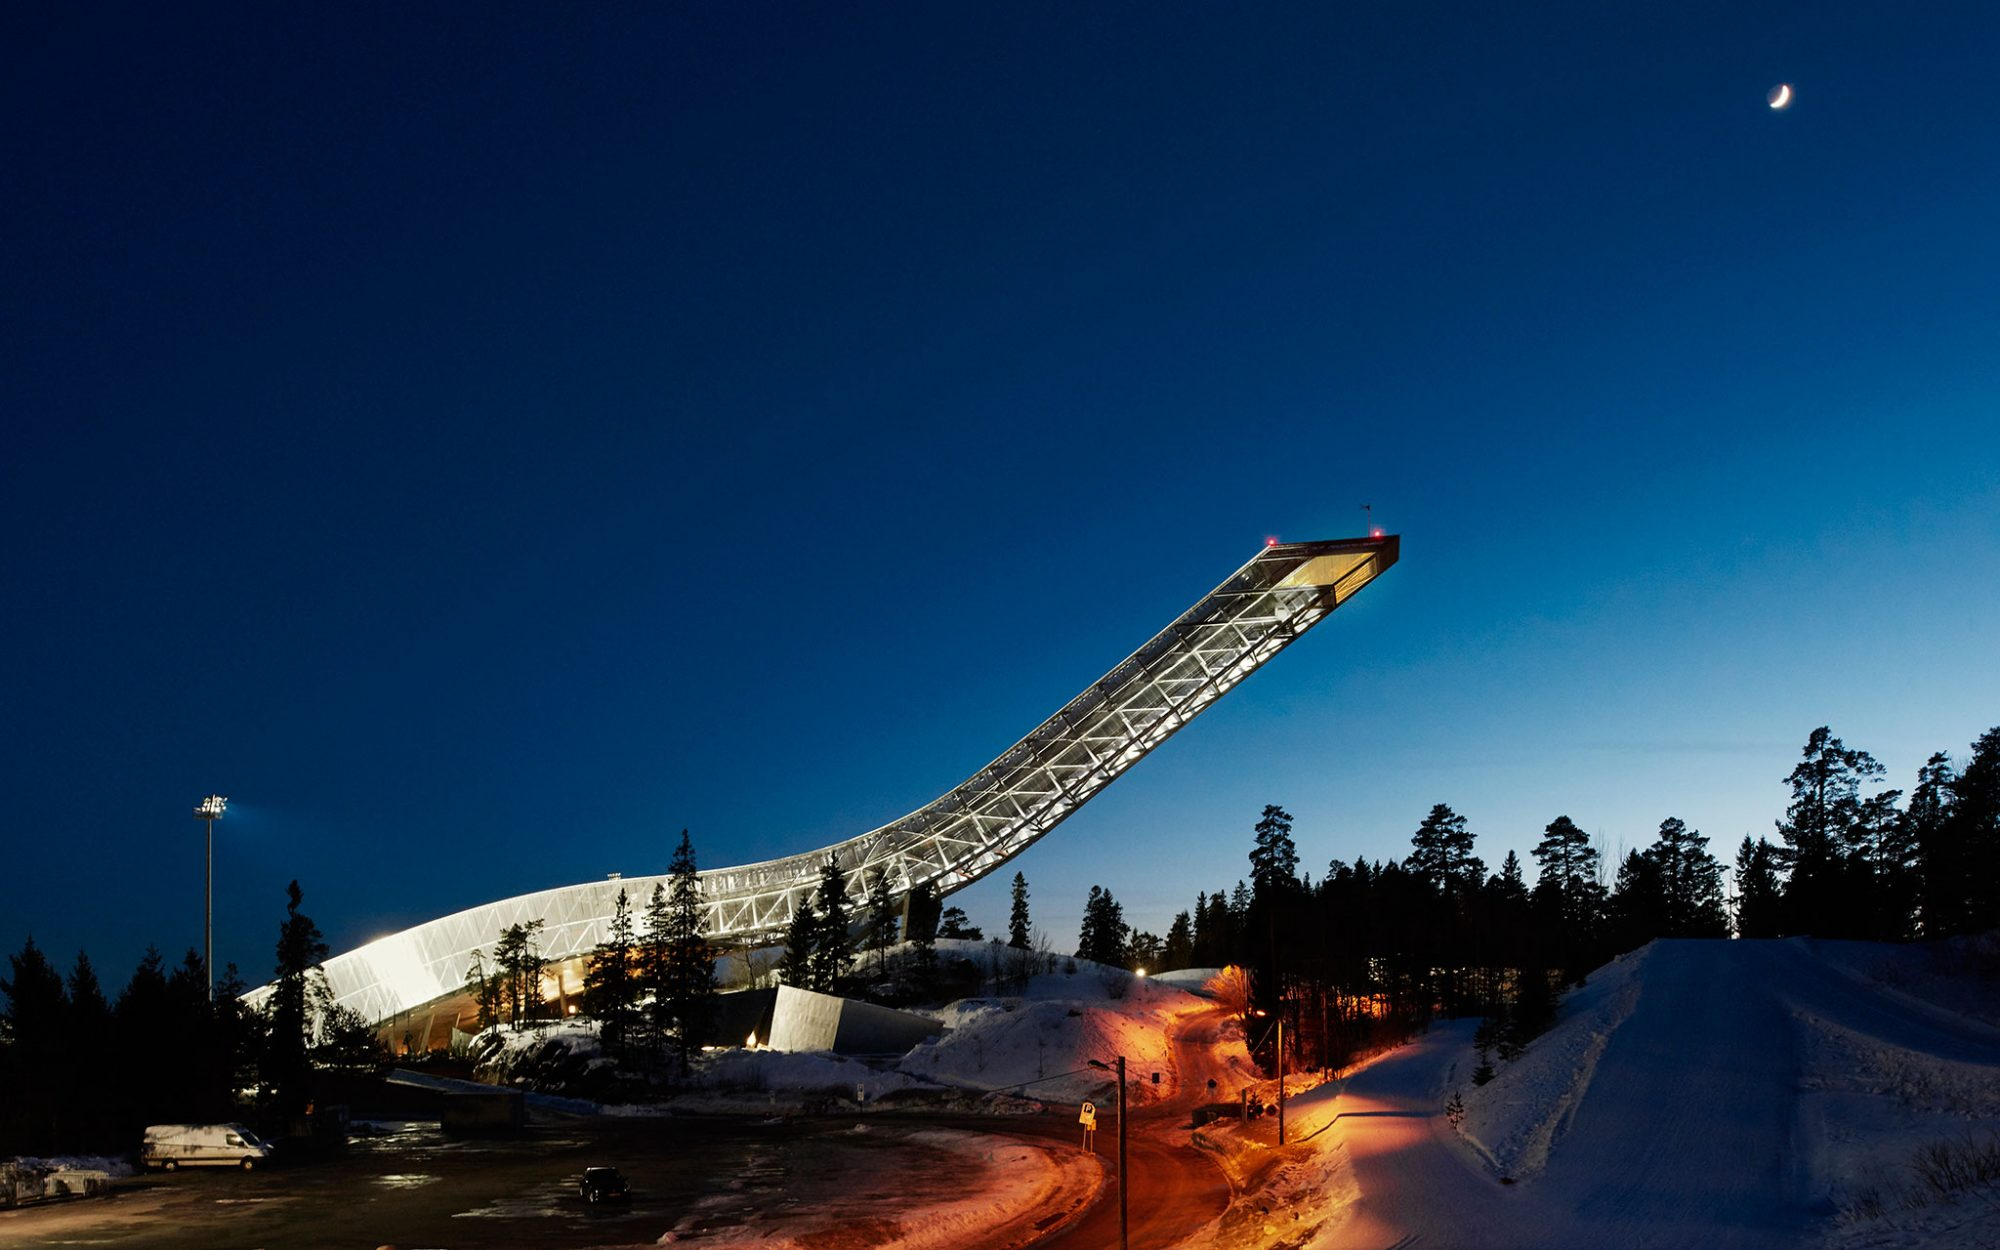 Airbnb is Offering a Stay Atop the 'World's Most Modern Ski Jump'